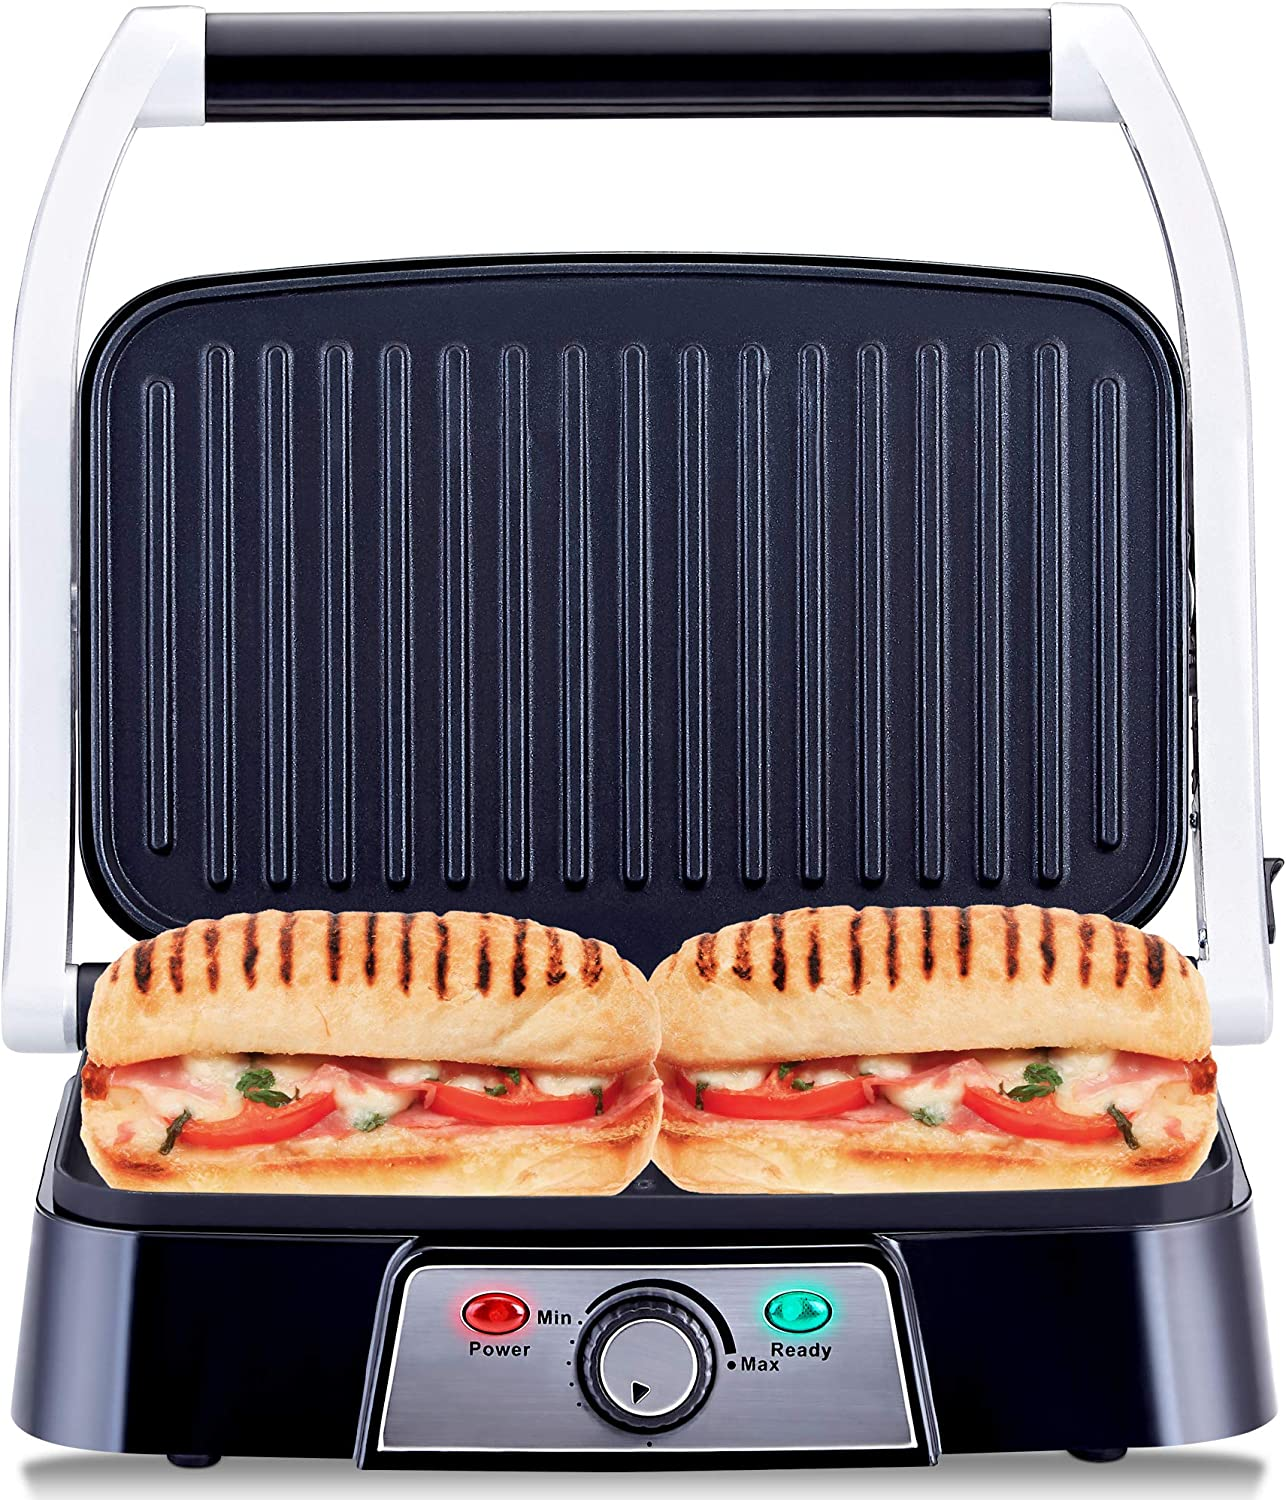 Netta Panini Maker Health Grill Sandwich Toaster Panini Press 2 Slice Non Stick Grill Plates 1500w Stainless Steel Amazon Co Uk Kitchen Home